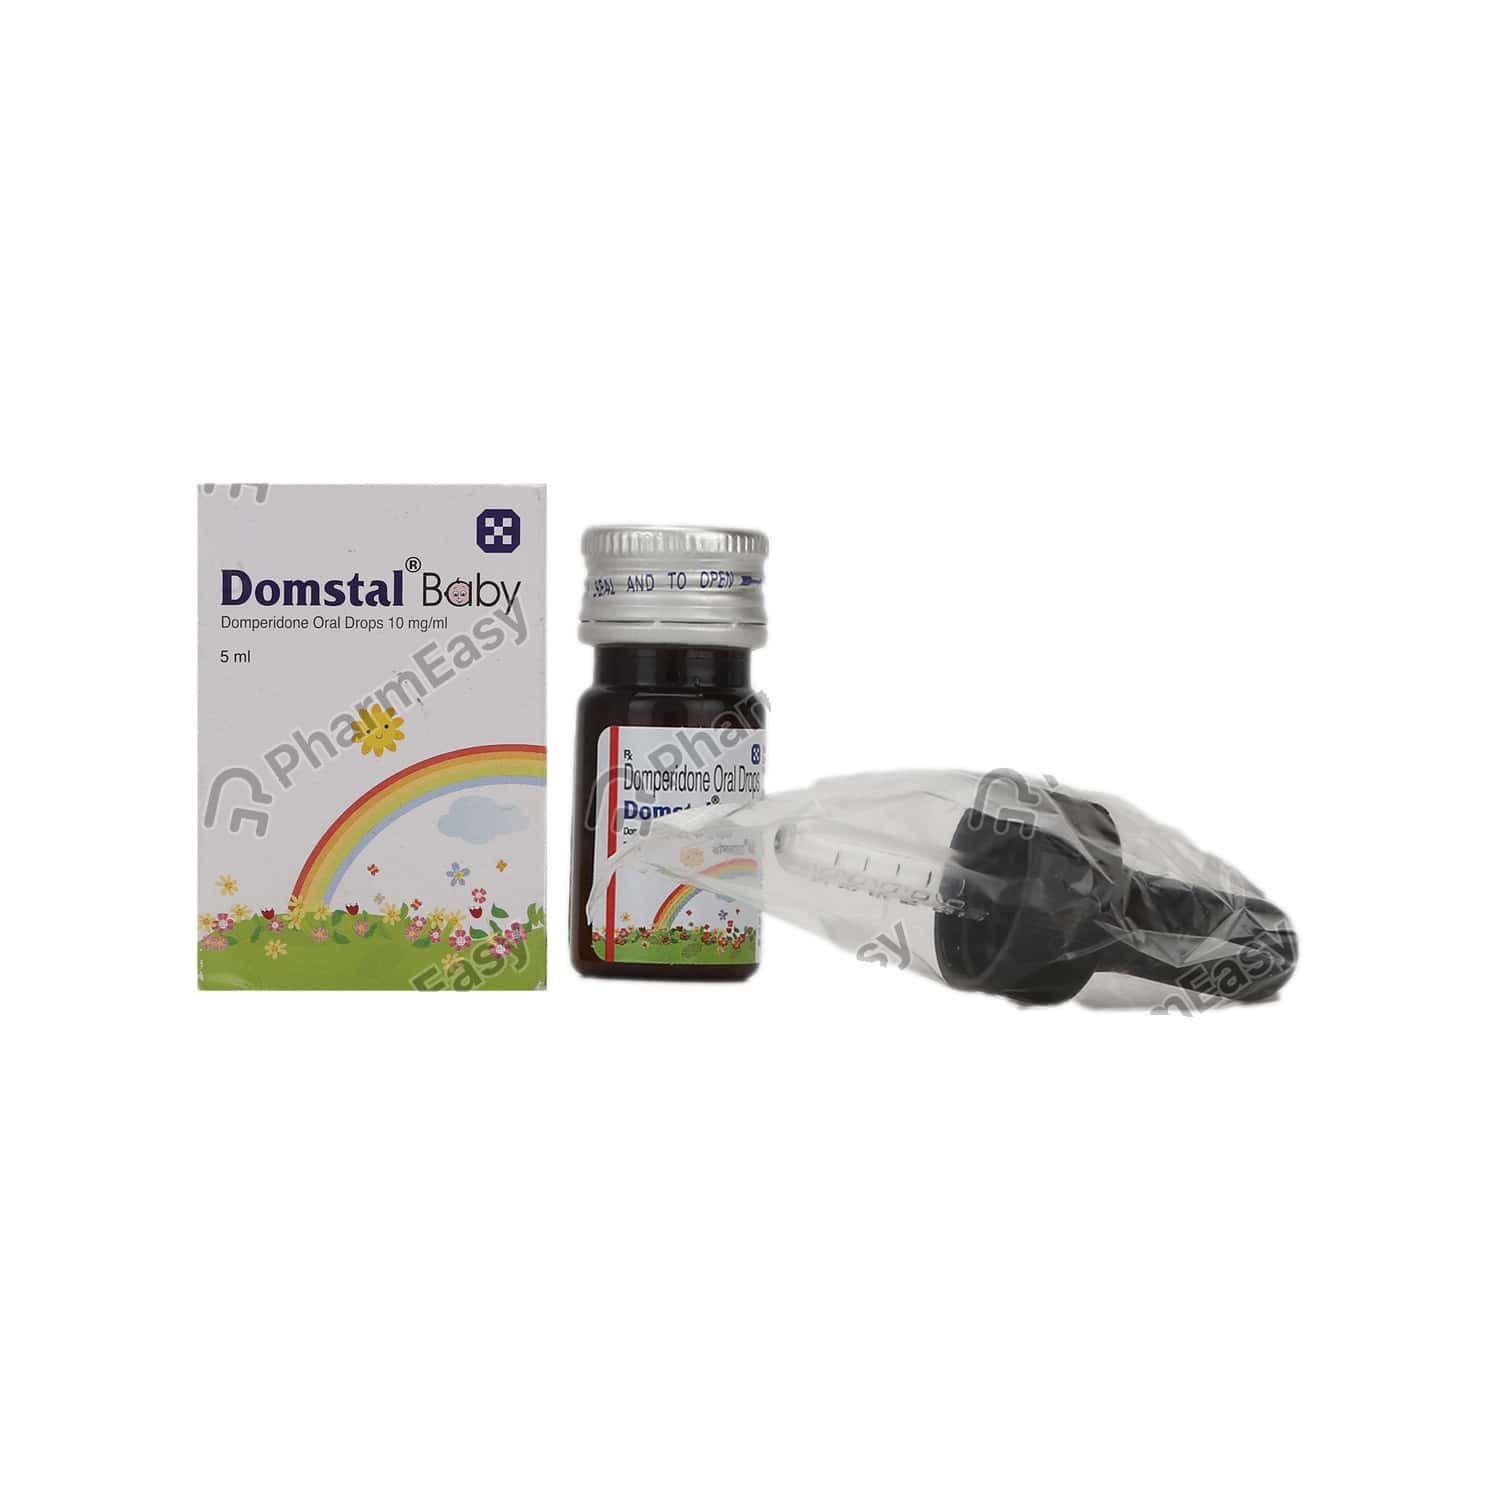 Domstal Baby Strawberry Flav Drops 5ml